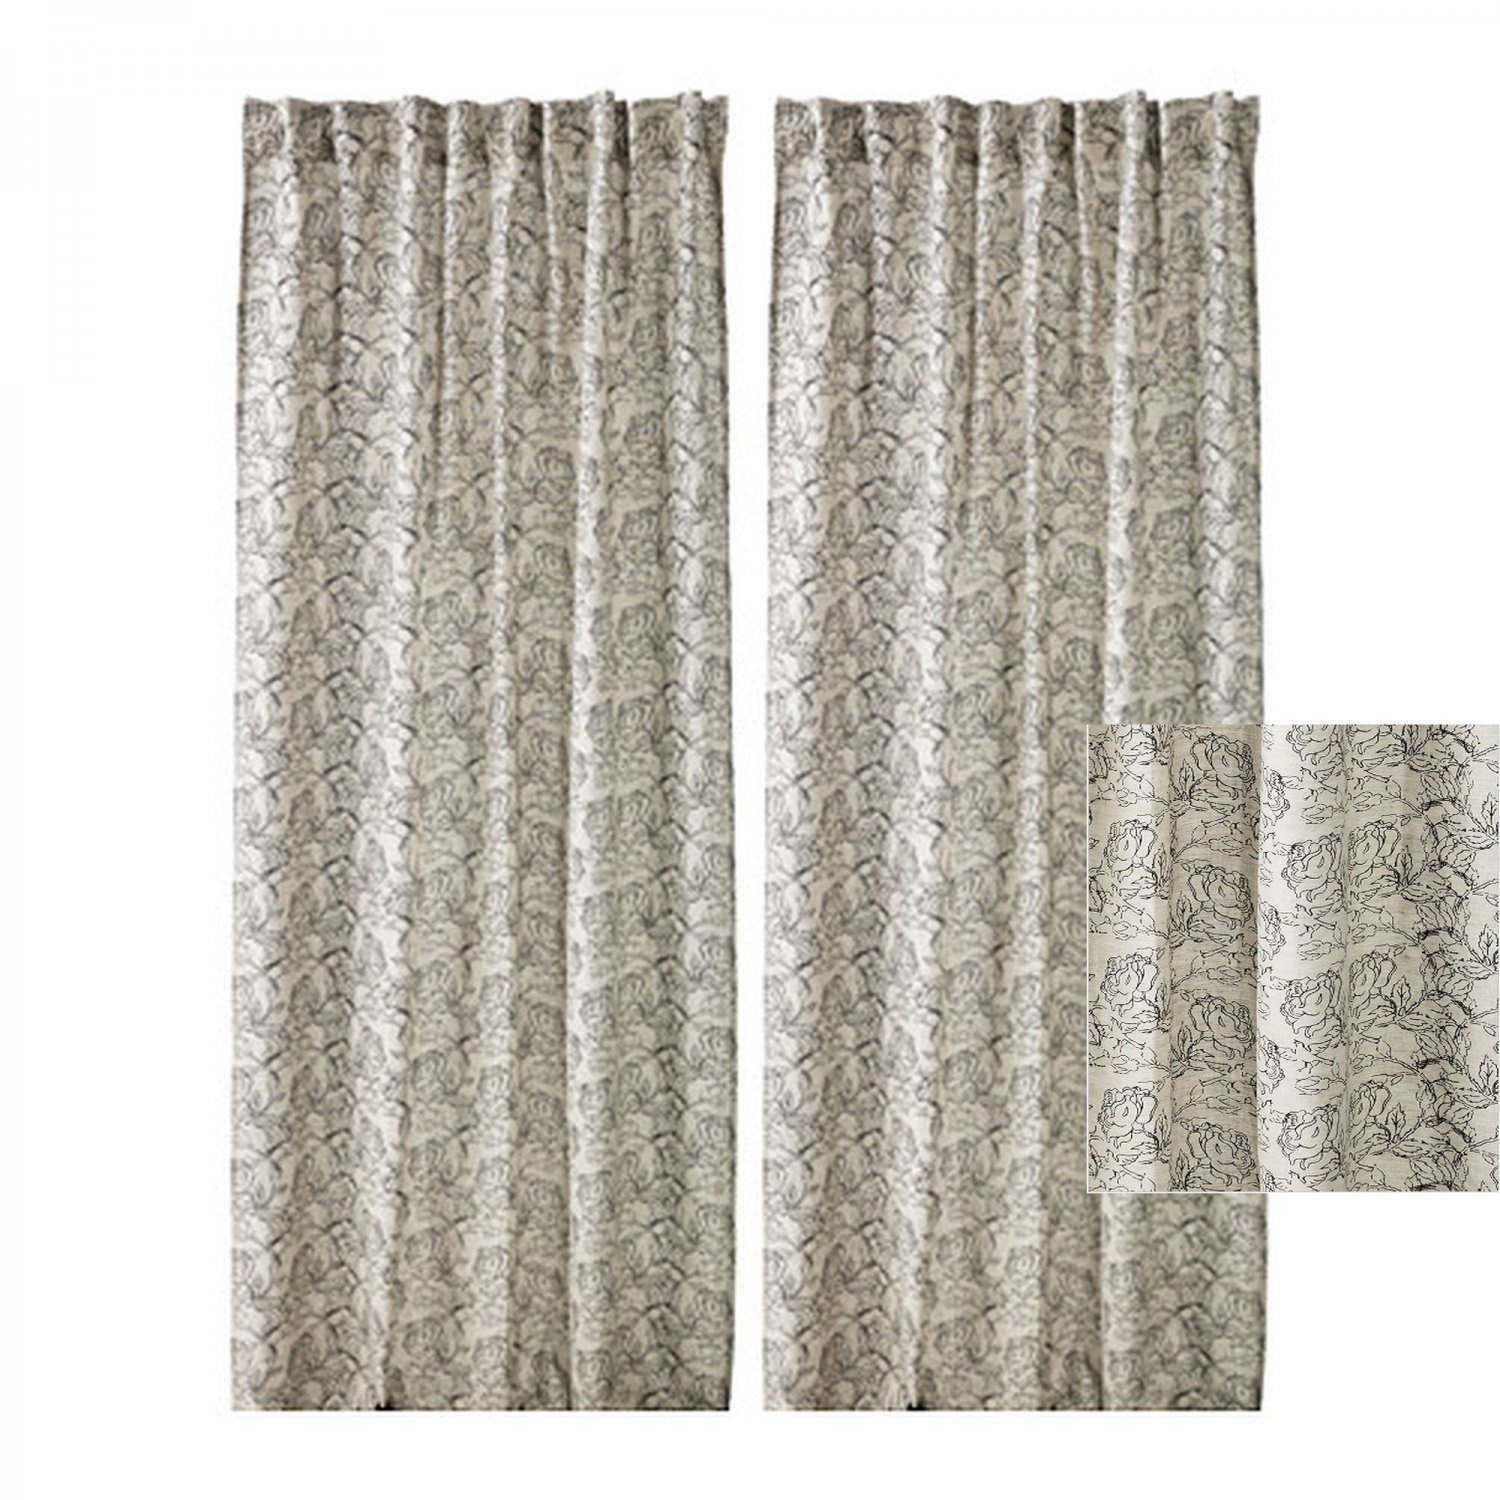 ikea ryssby 2014 curtains drapes black beige natural floral linen blend 118. Black Bedroom Furniture Sets. Home Design Ideas